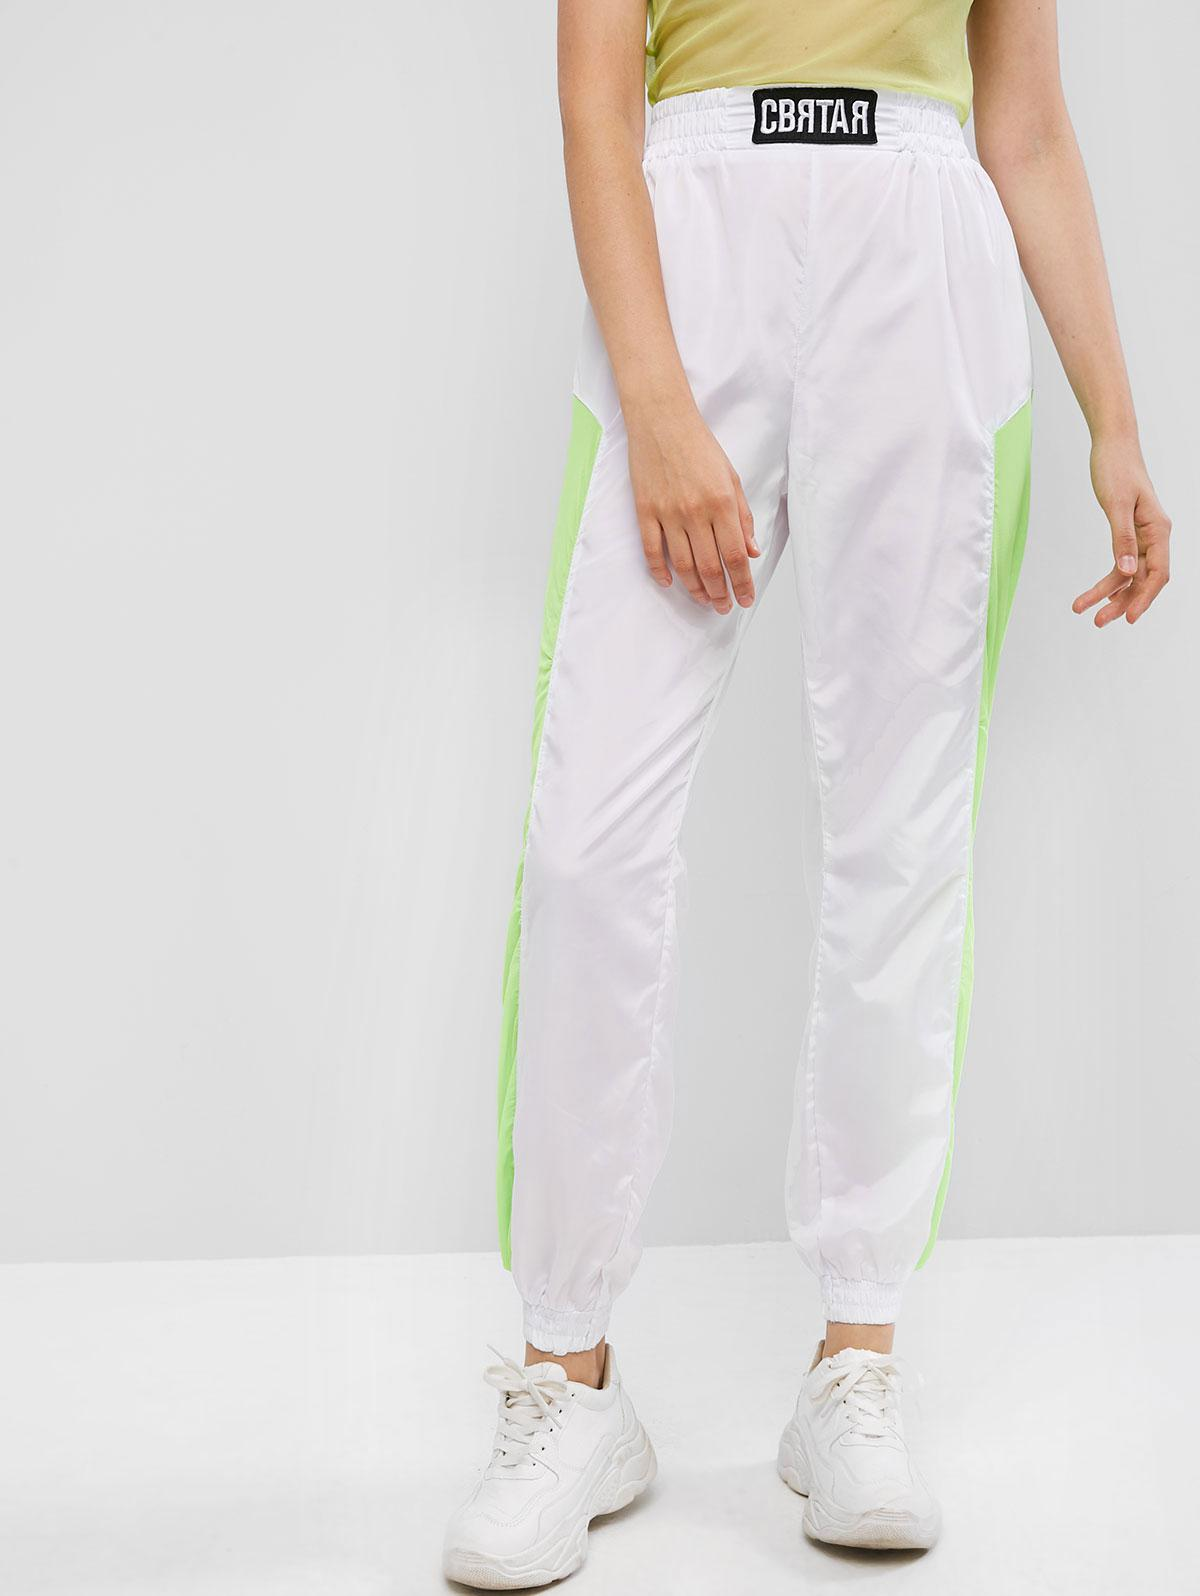 Embroidered Patched Neon Mesh Panel Jogger Pants, White